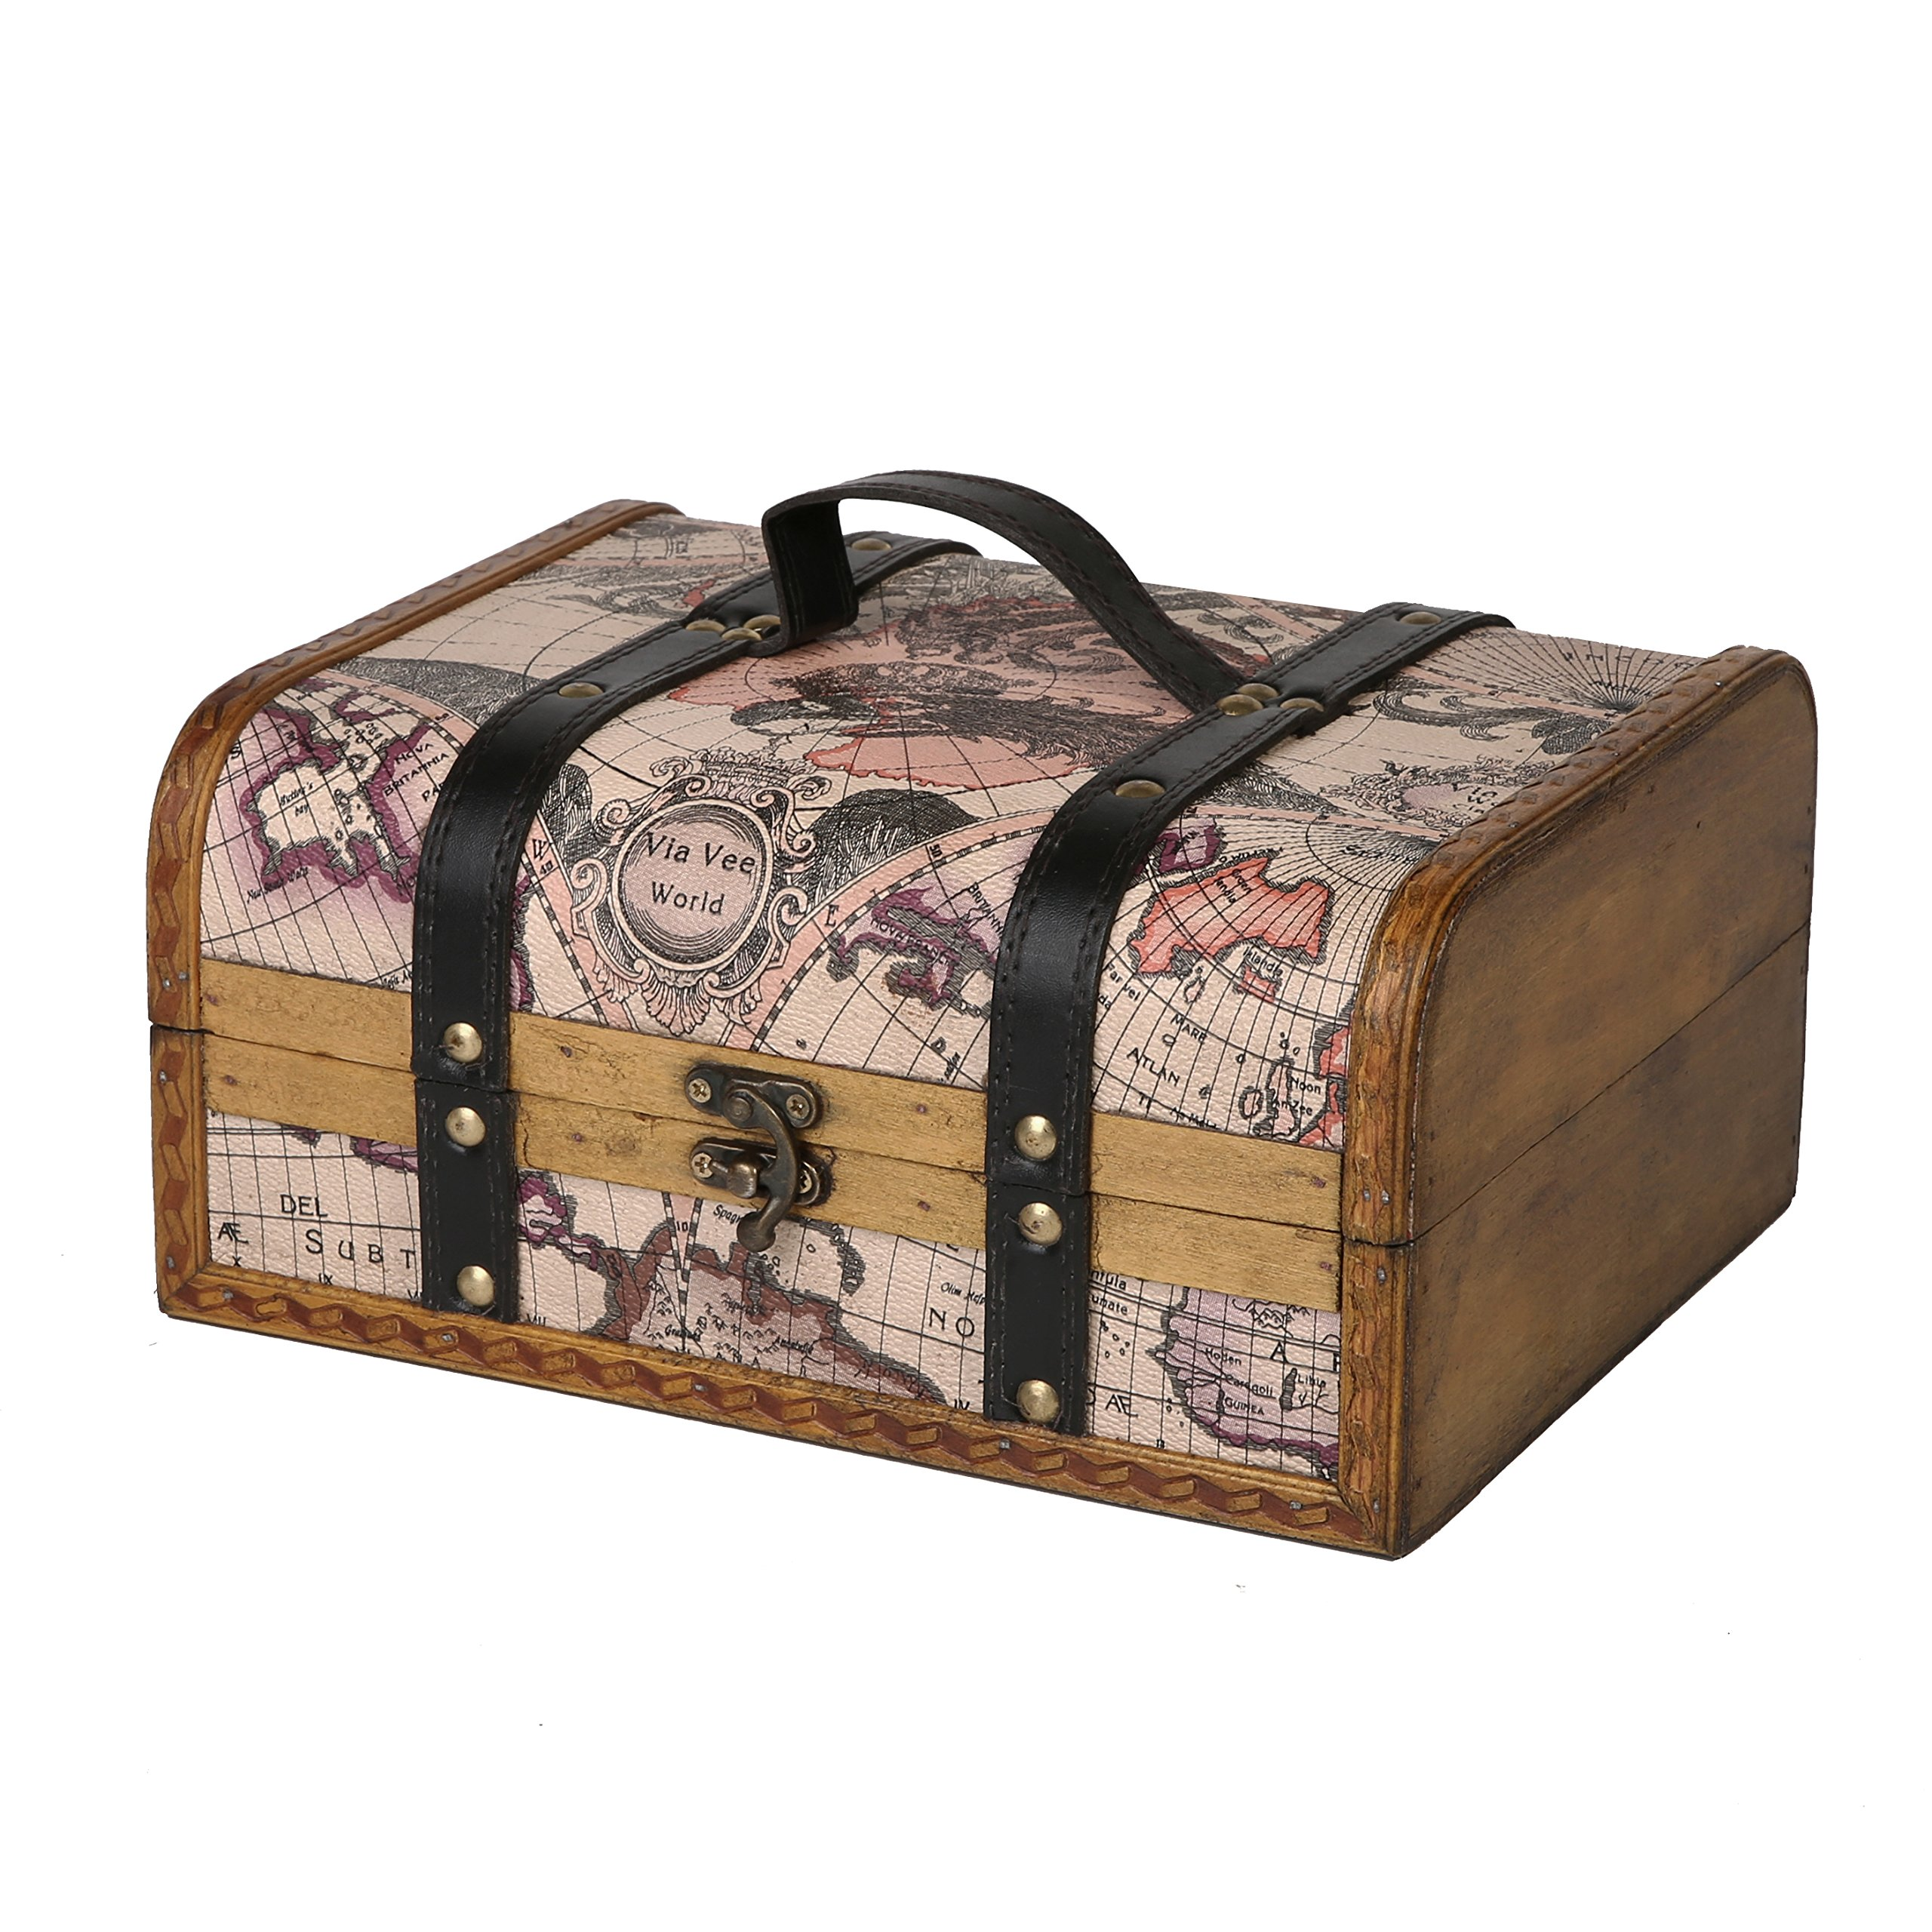 SLPR Maiden Voyage Wooden Box (Travel) | Vintage Themed Old Map Decorative Treasure Stash Trunk Old-Fashioned Antique Vintage Style for Birthday Parties Wedding Decoration